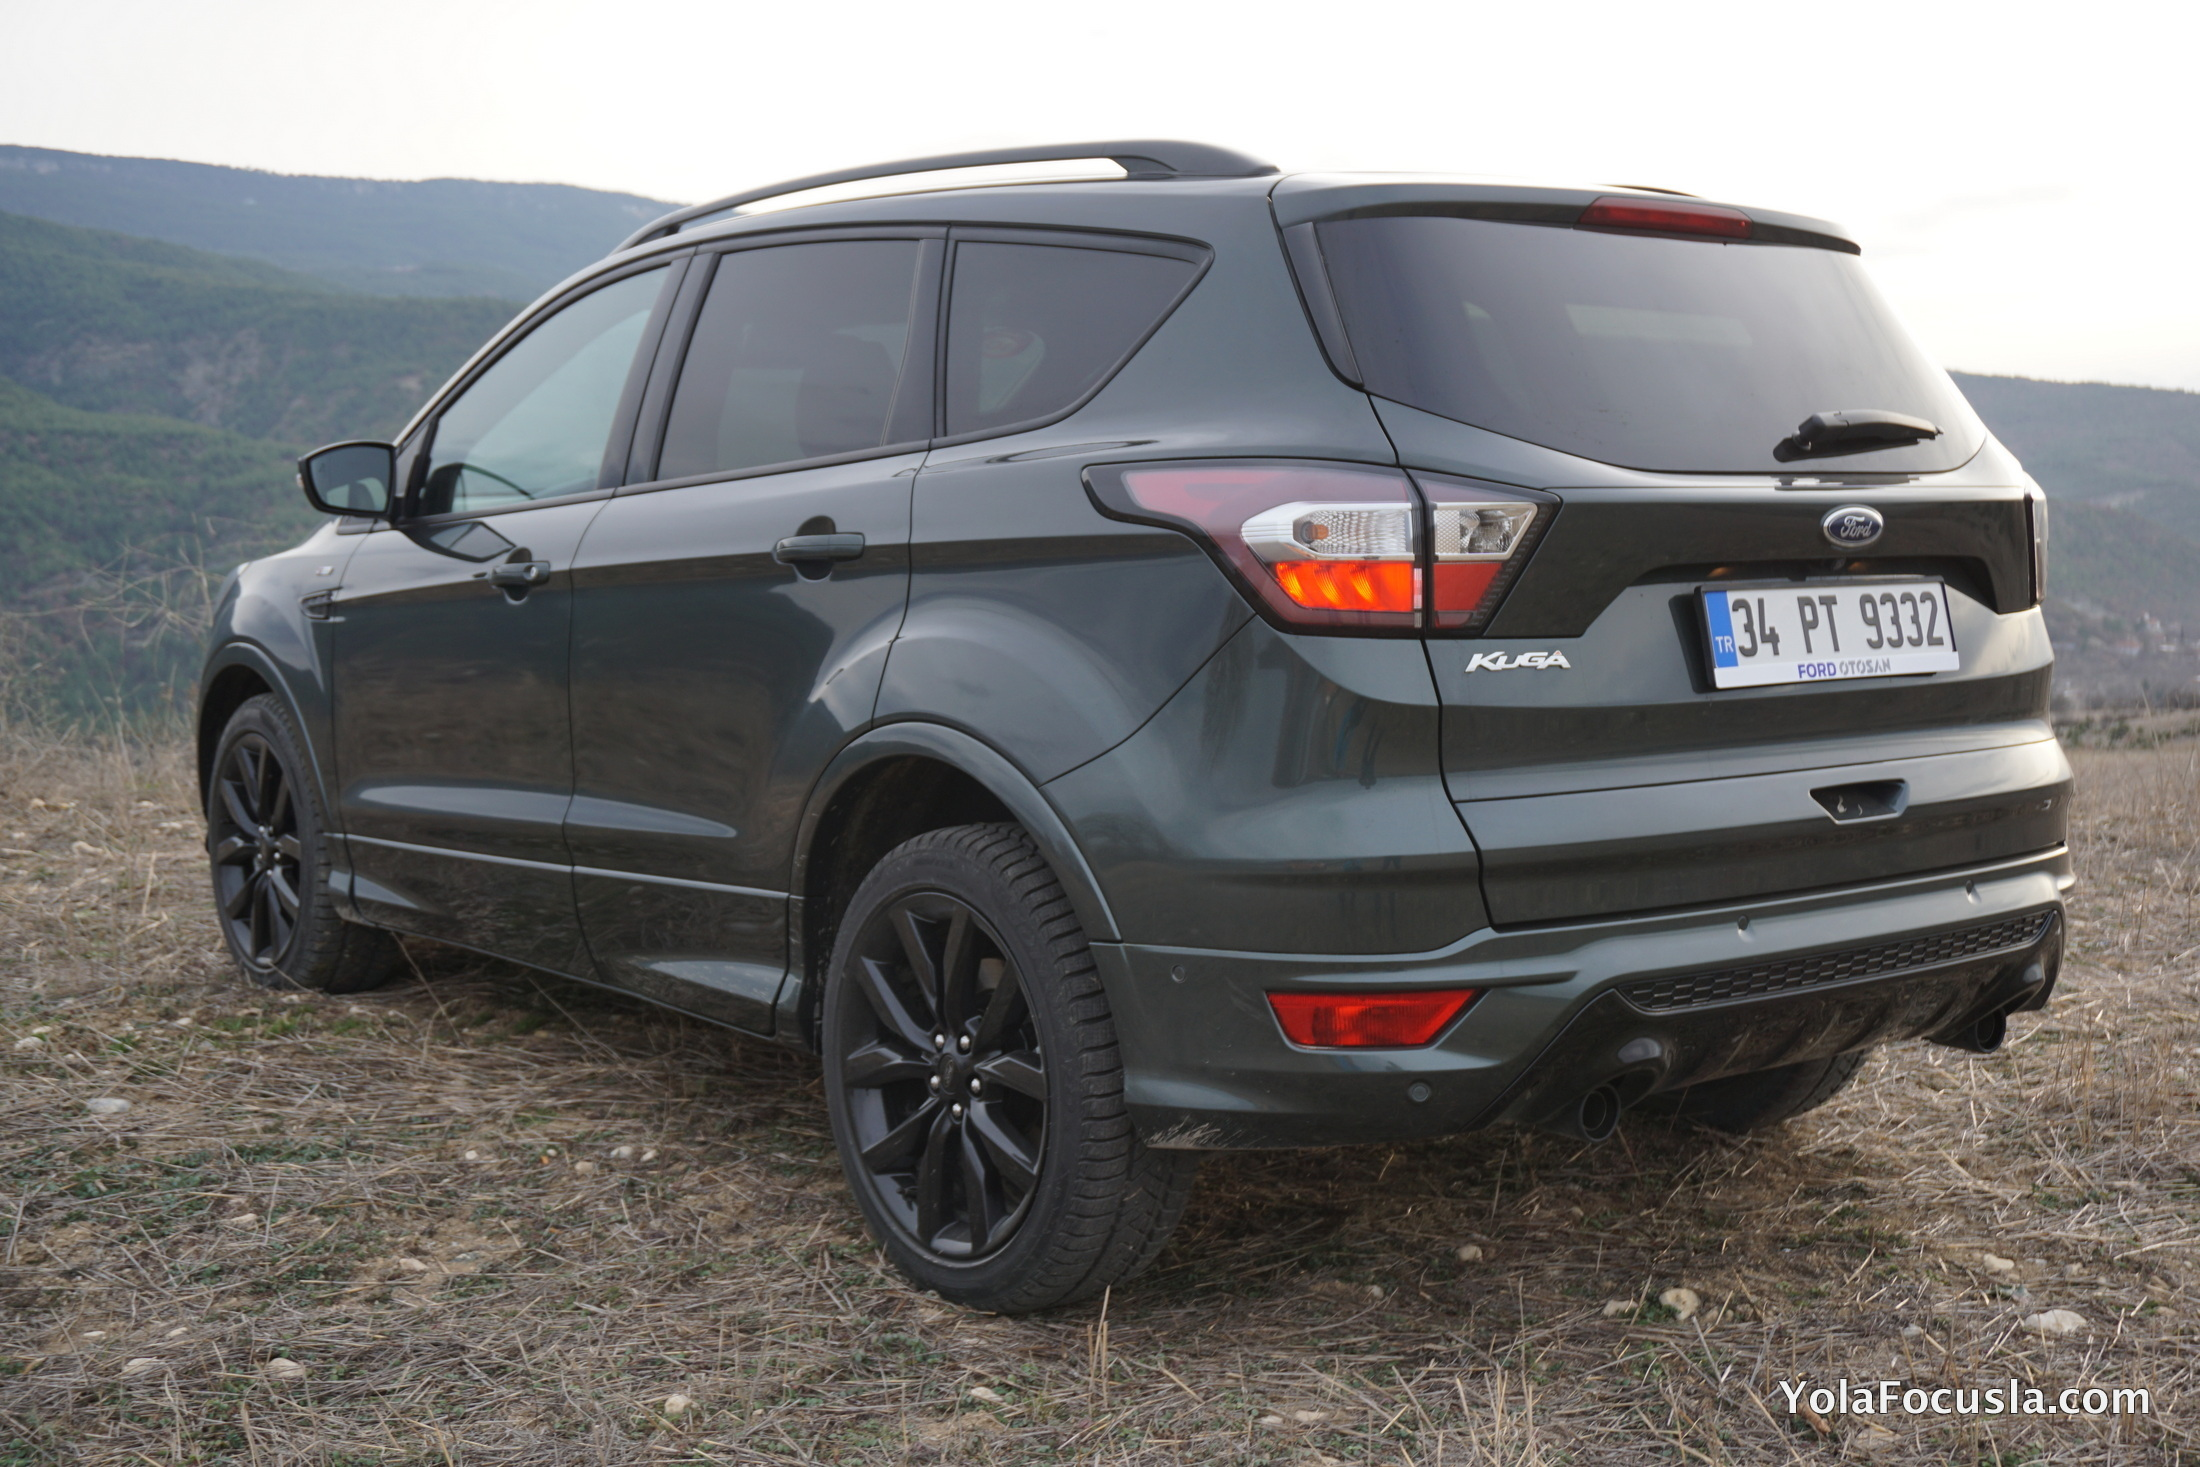 ford kuga 1 5 tdci powershift test s r 11 yola focusla. Black Bedroom Furniture Sets. Home Design Ideas